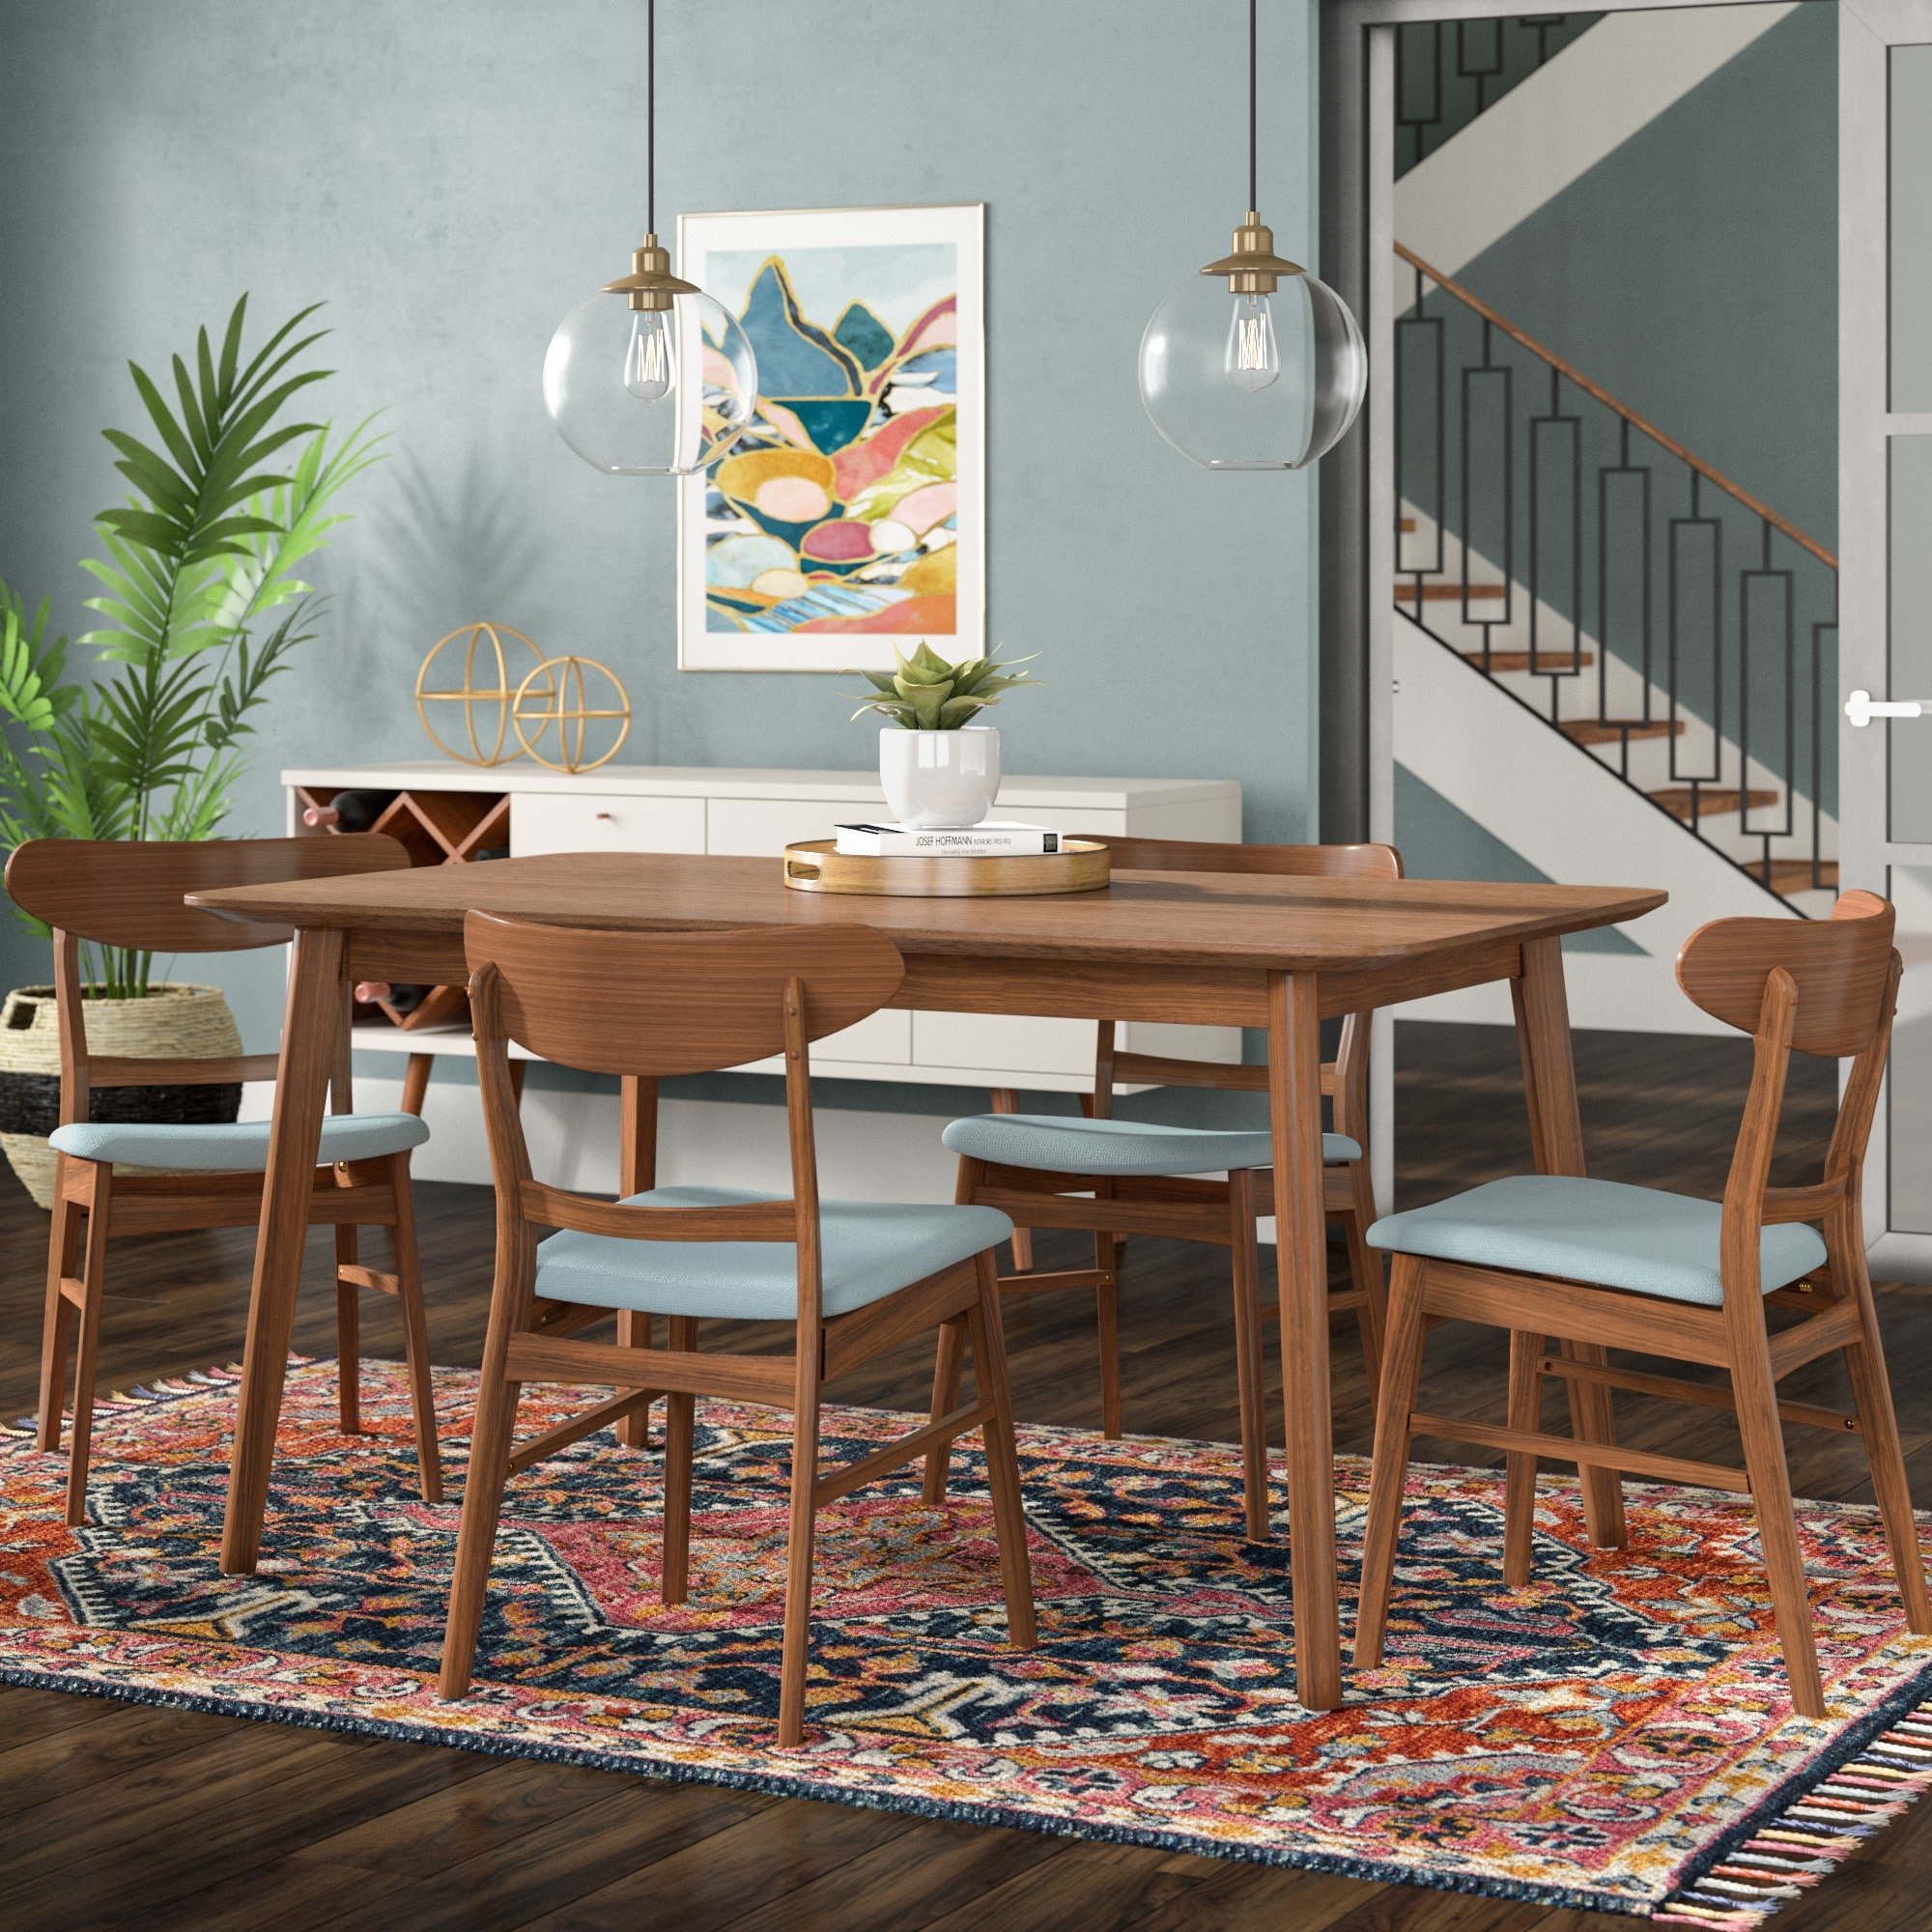 Langley Street Yolanda 5 Piece Dining Set & Reviews | Wayfair With Most Current Laurent 5 Piece Round Dining Sets With Wood Chairs (Image 11 of 20)